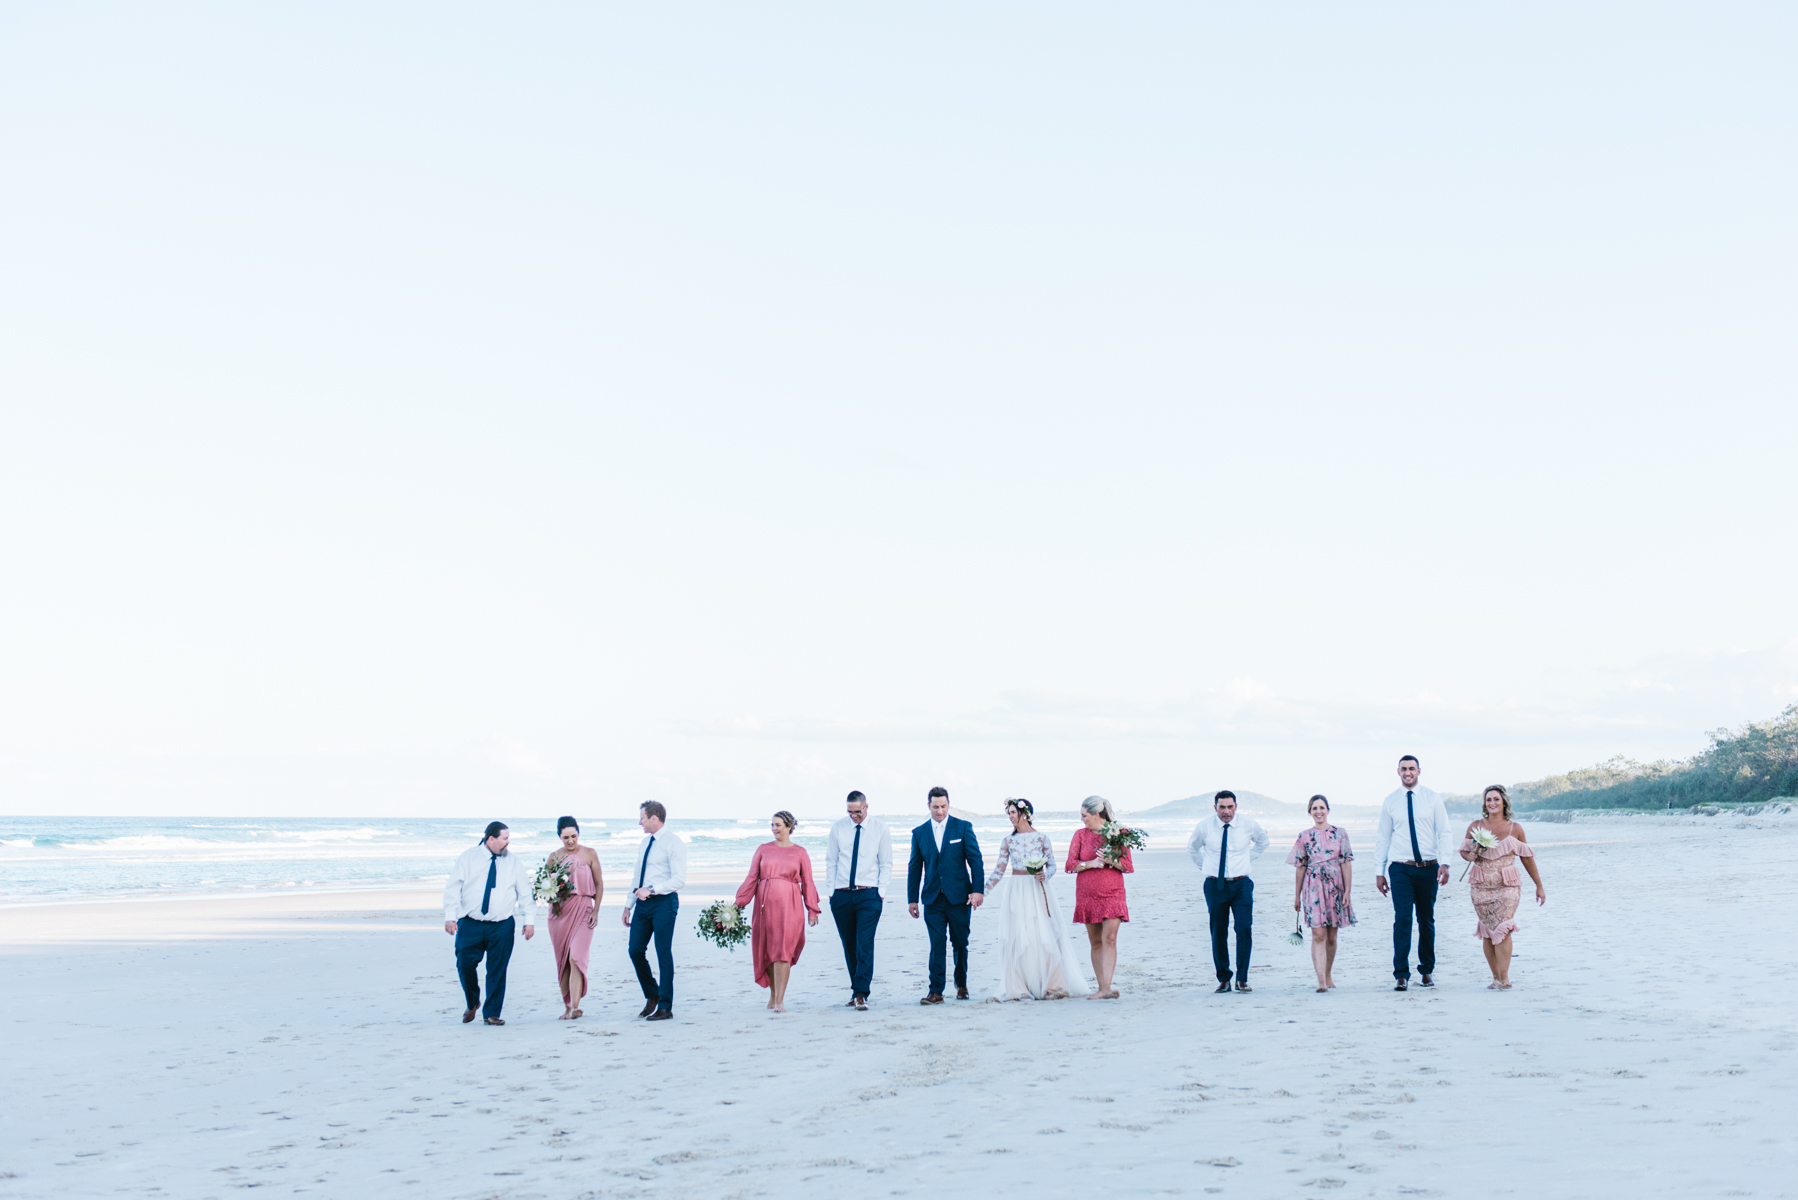 skylasagephotography,wedding ,wedding photography,tweed coast, byron bay,kingscliff-512.jpg